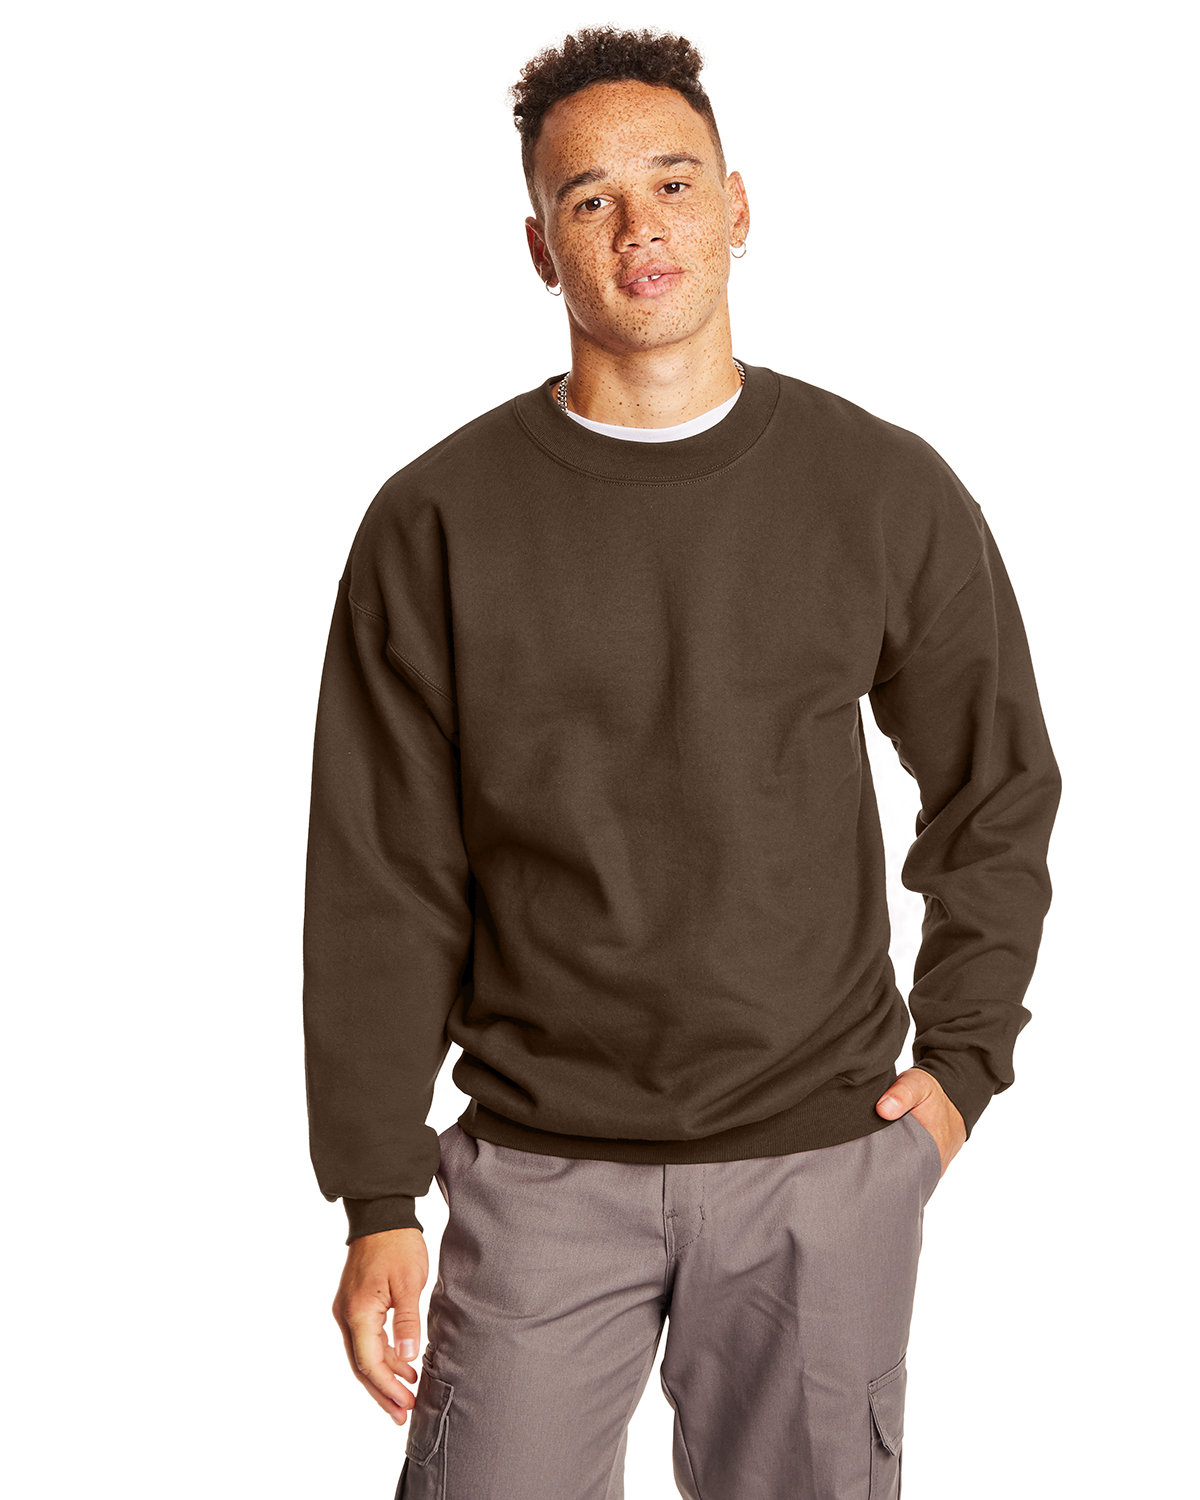 Hanes Adult Ultimate Cotton® 90/10 Fleece Crew DARK CHOCOLATE